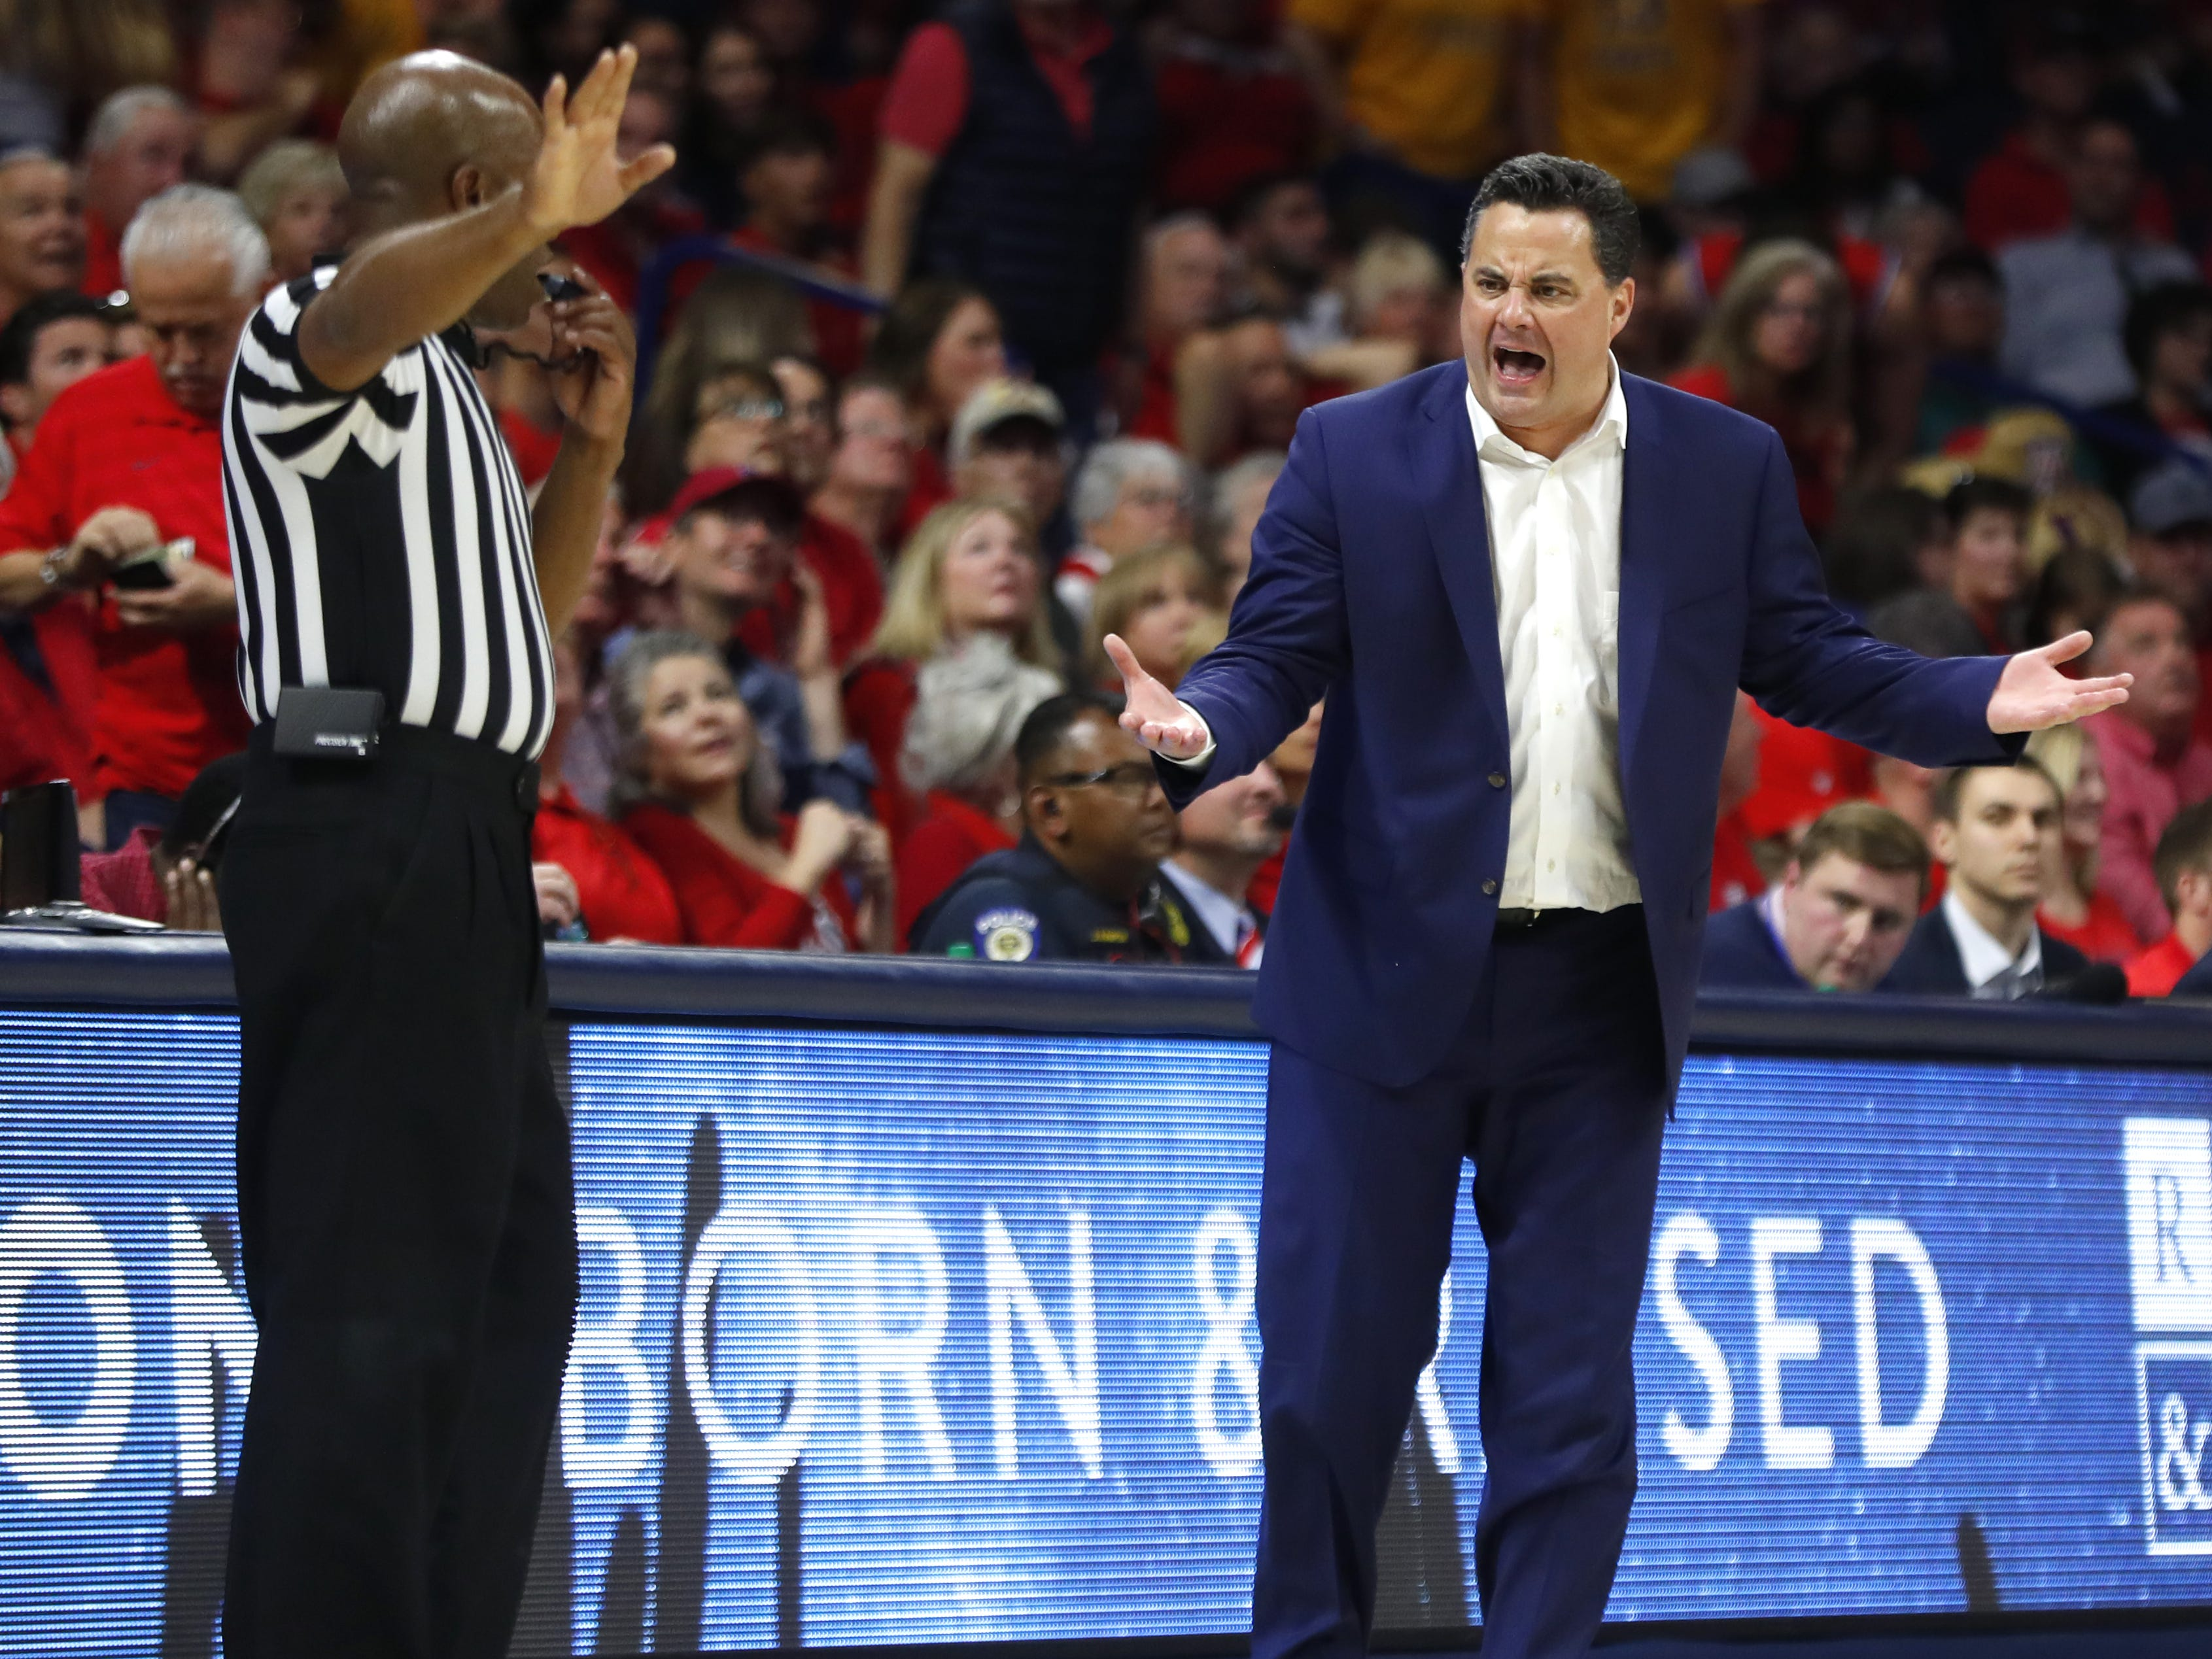 Arizona's head coach Sean Miller complains to an official during the first half against ASU at the McKale Memorial Center in Tucson, Ariz. on March 9, 2019.